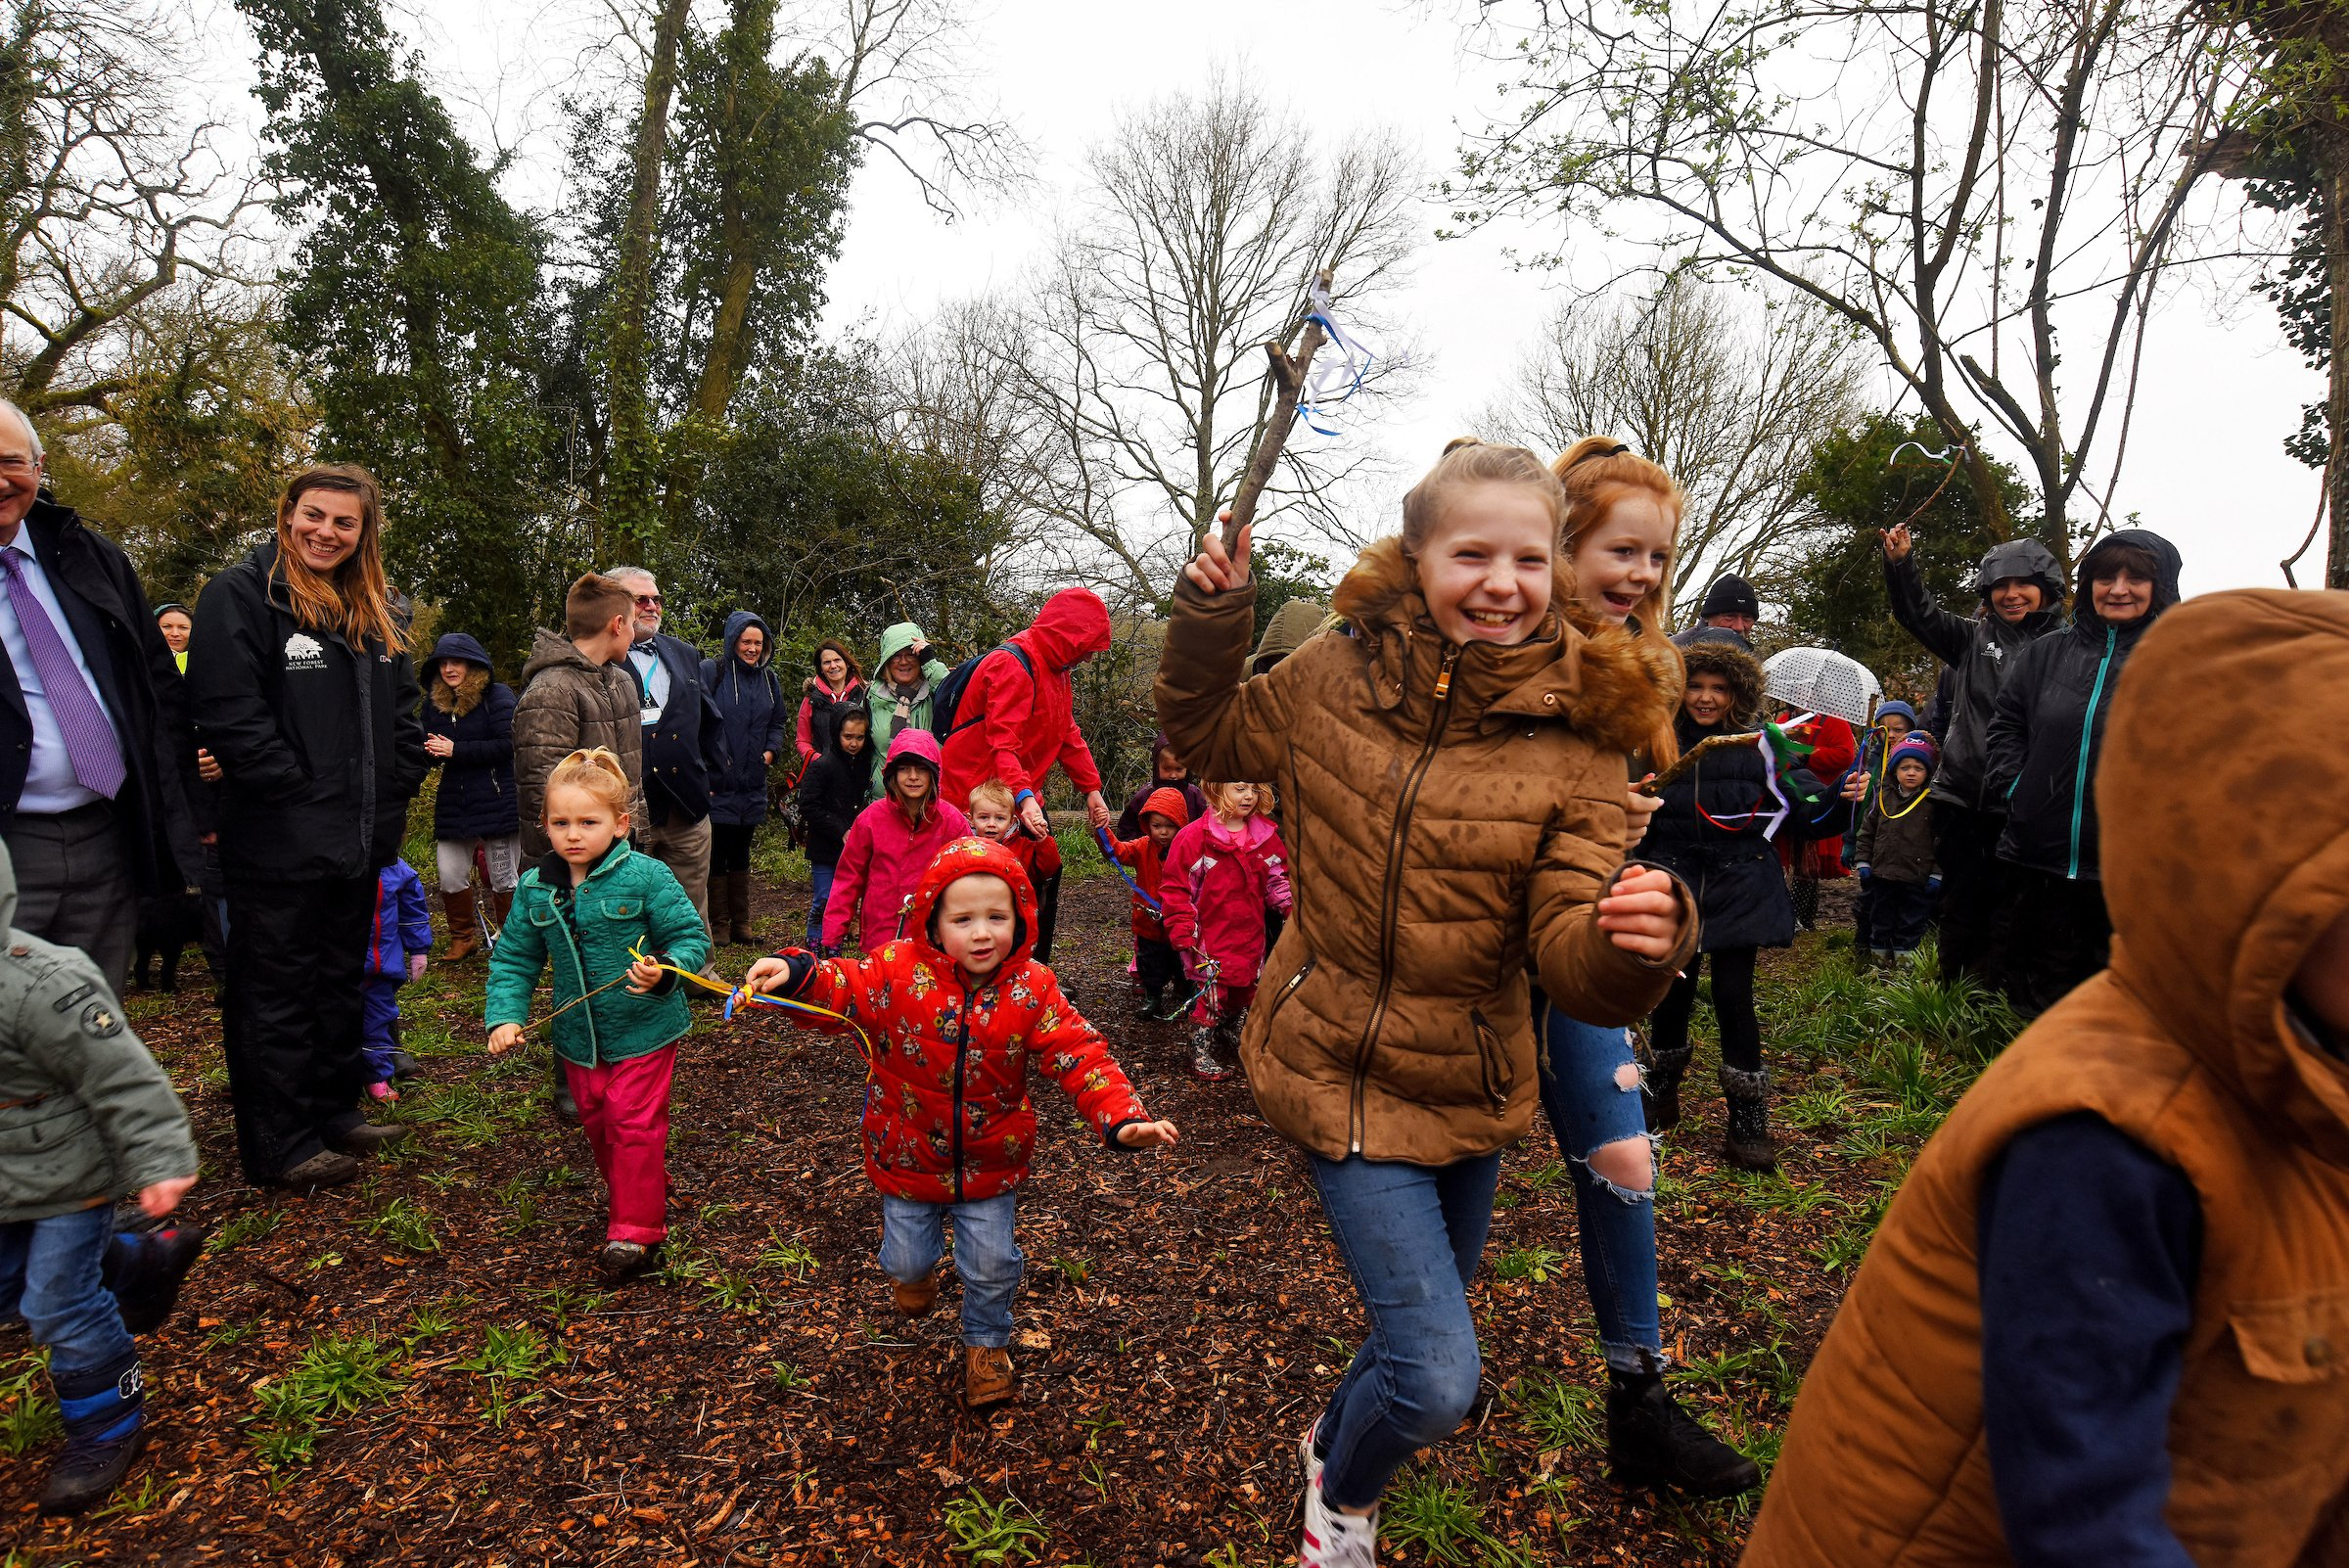 Holbury Manor wild play site opening April 2018